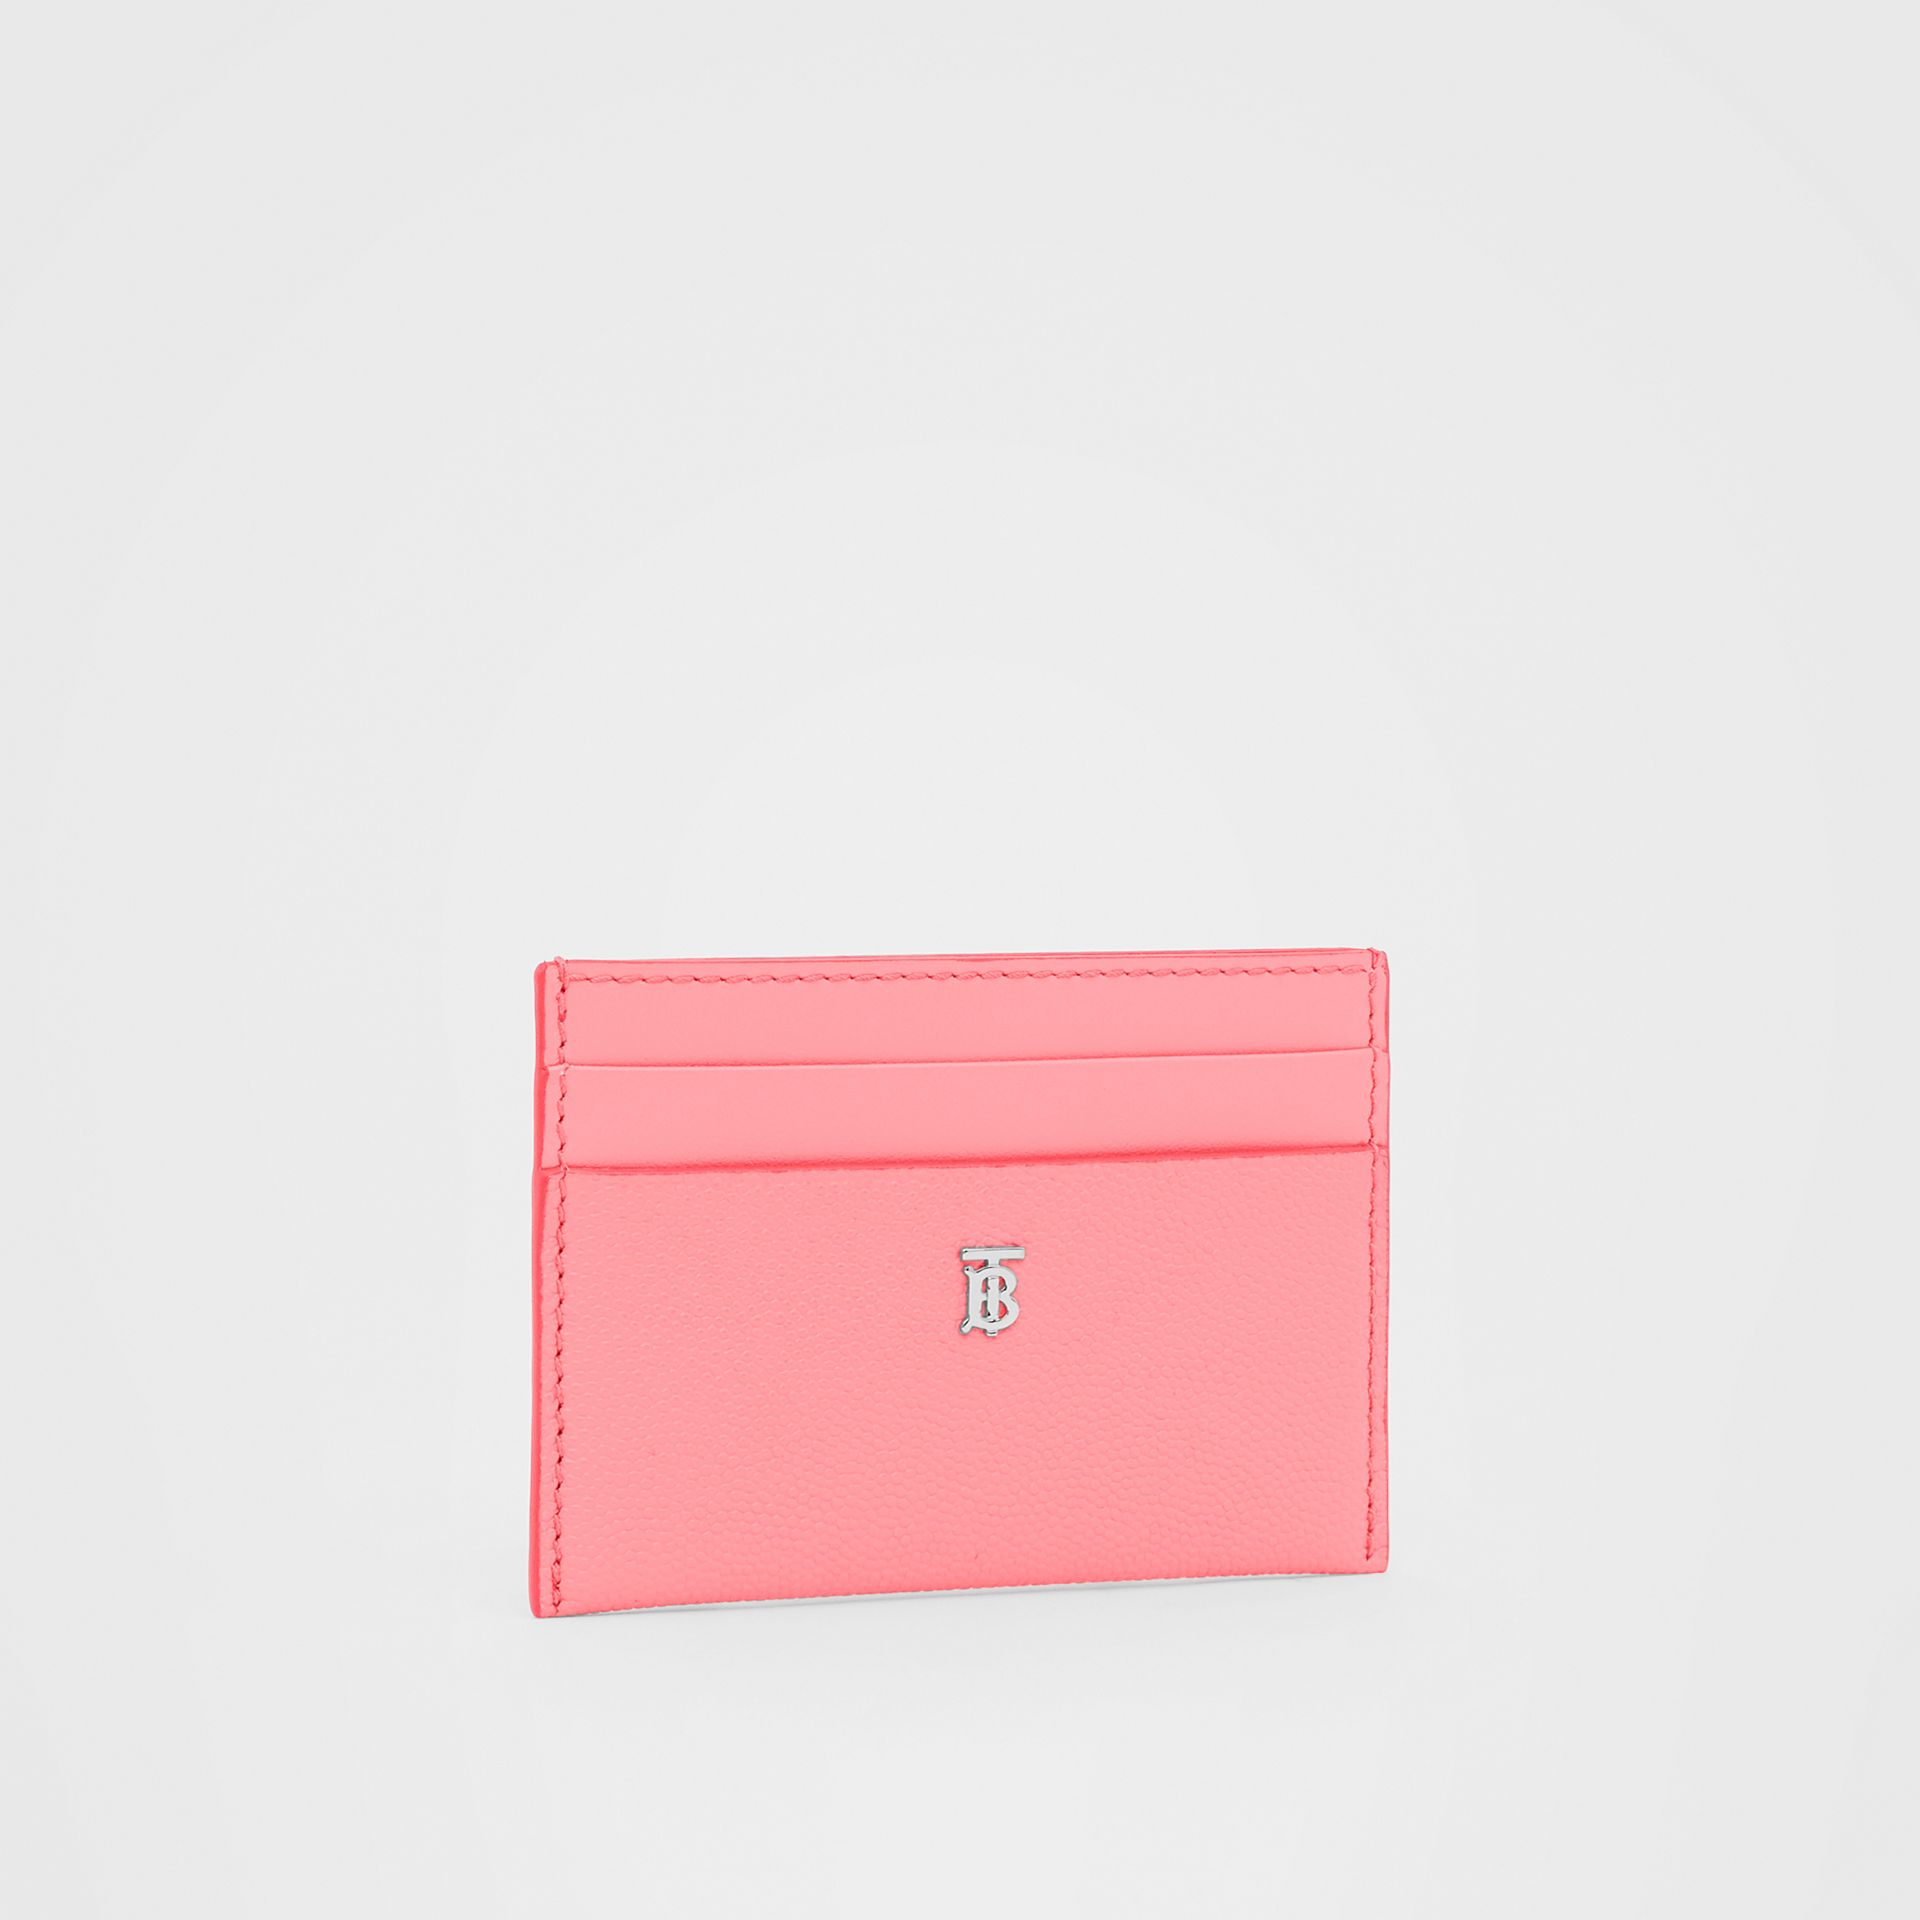 Monogram Motif Leather Card Case in Candy Floss/palladio - Women | Burberry Hong Kong S.A.R - gallery image 3